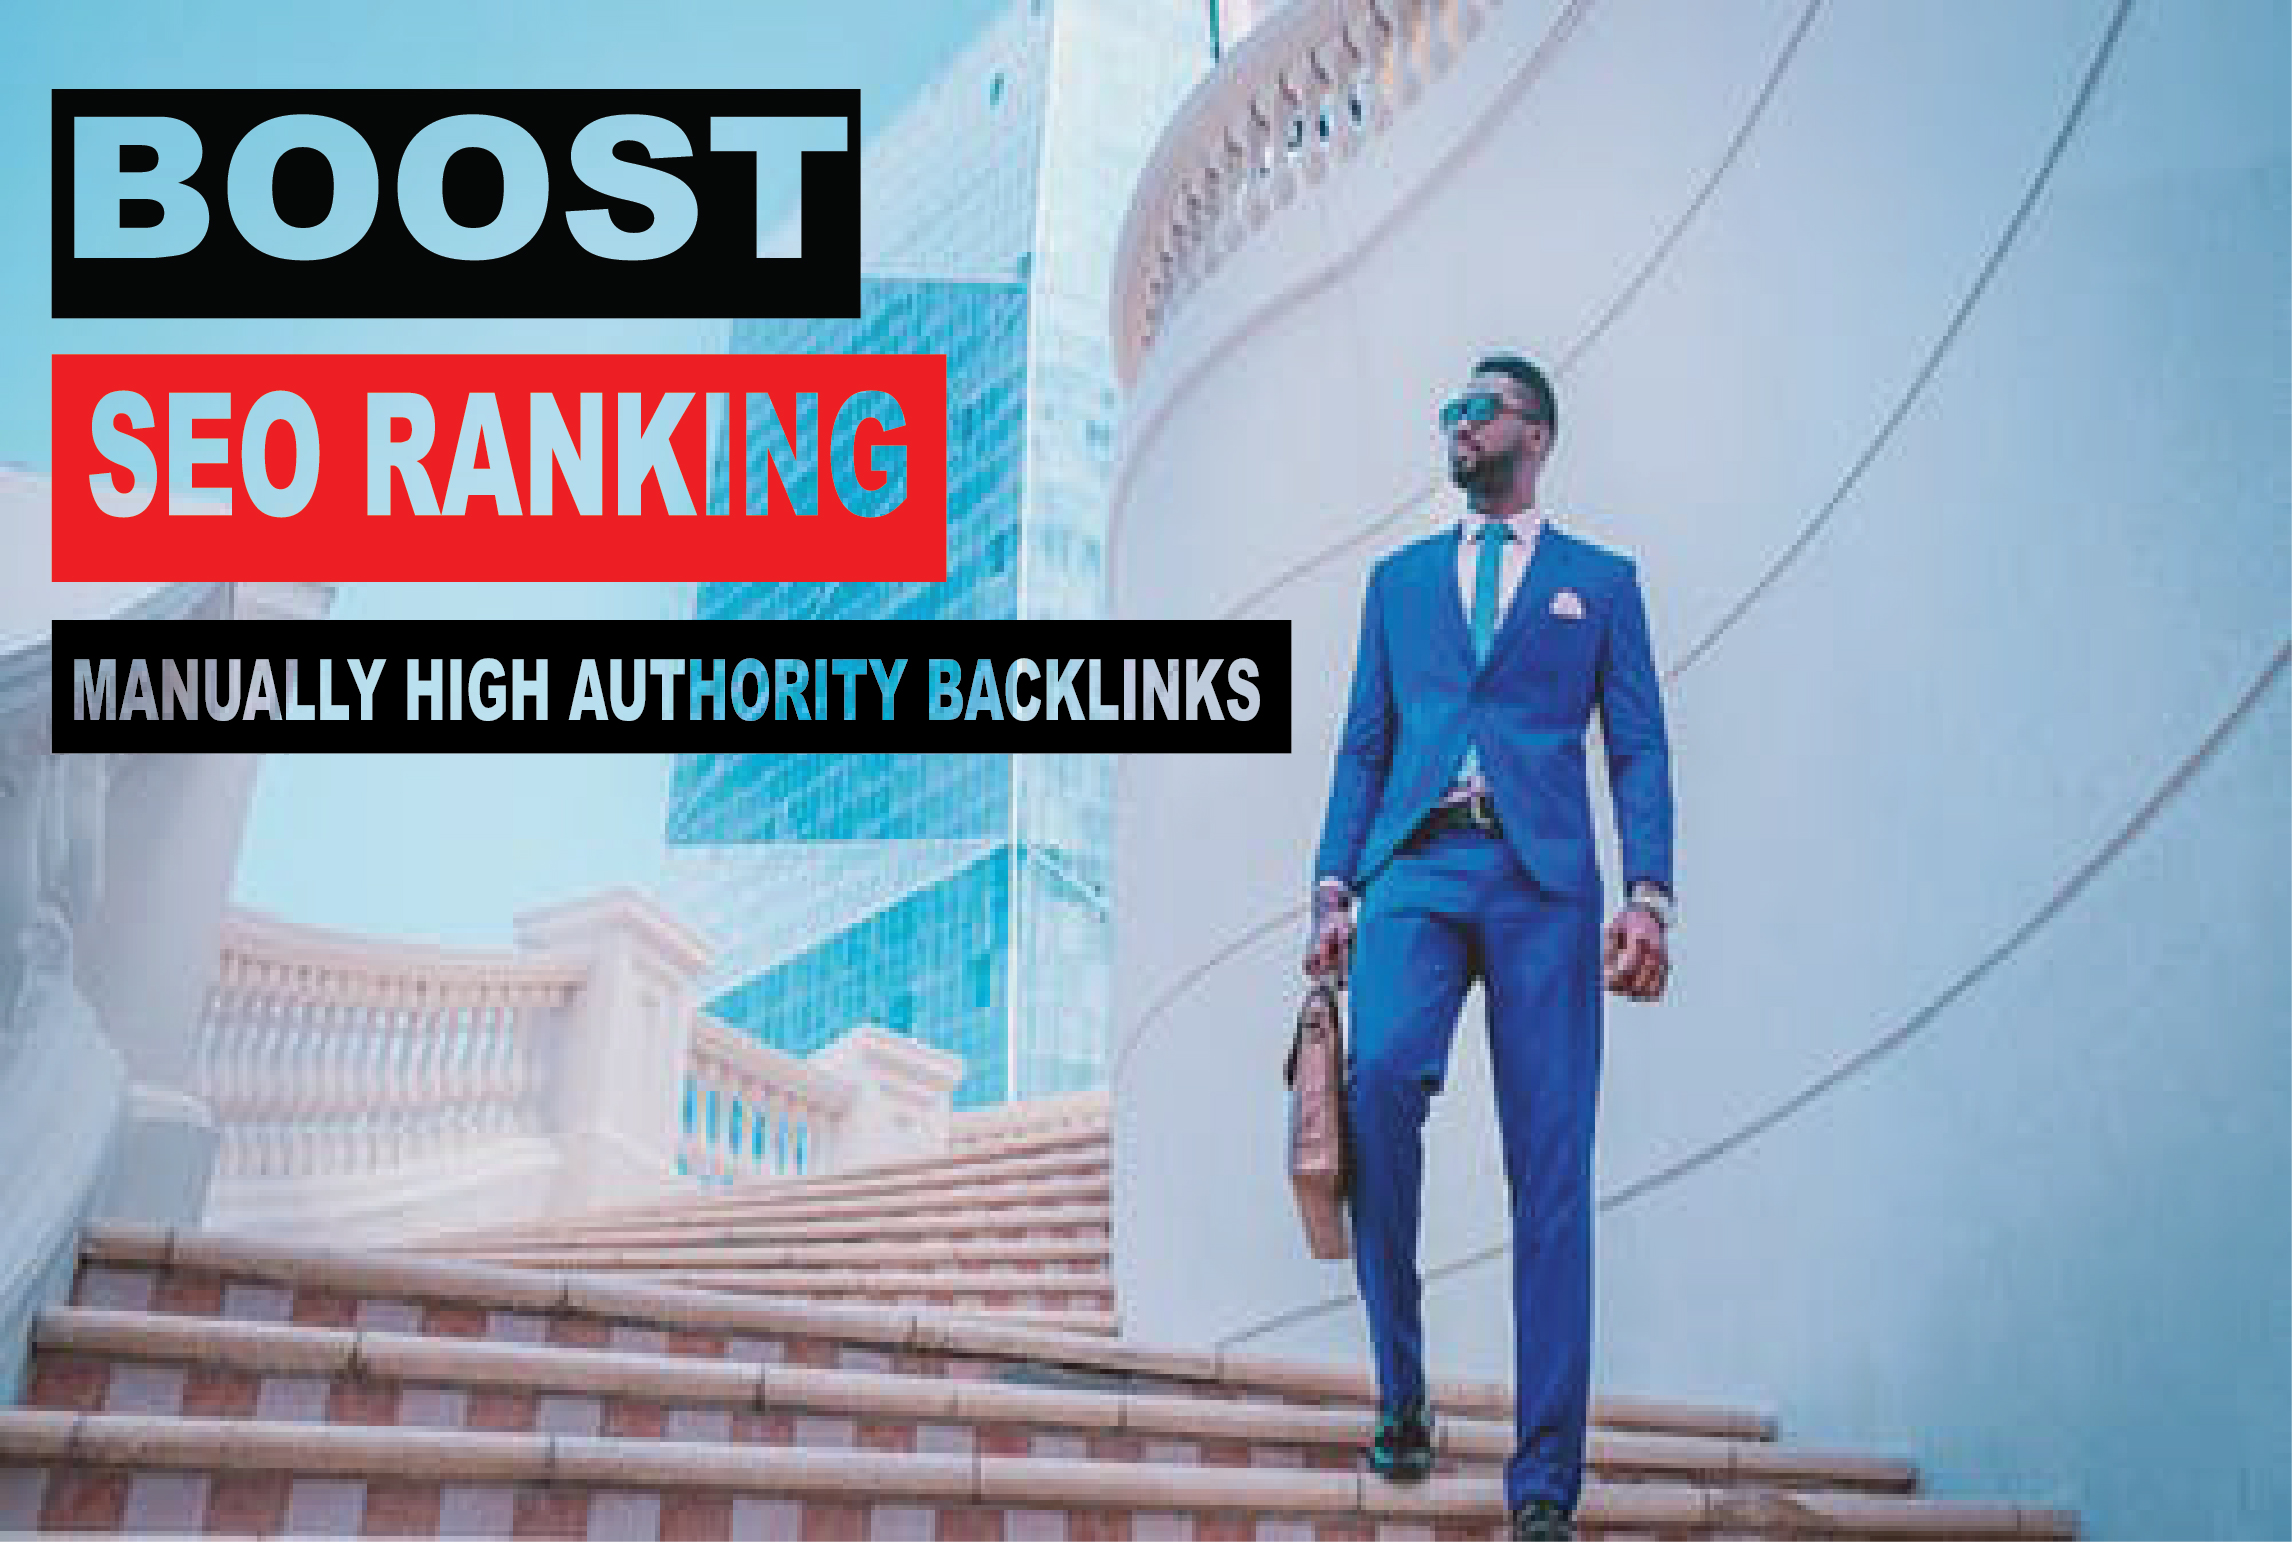 Boost Your Ranking on Google by Manual High Authority Dofollow SEO Backlinks